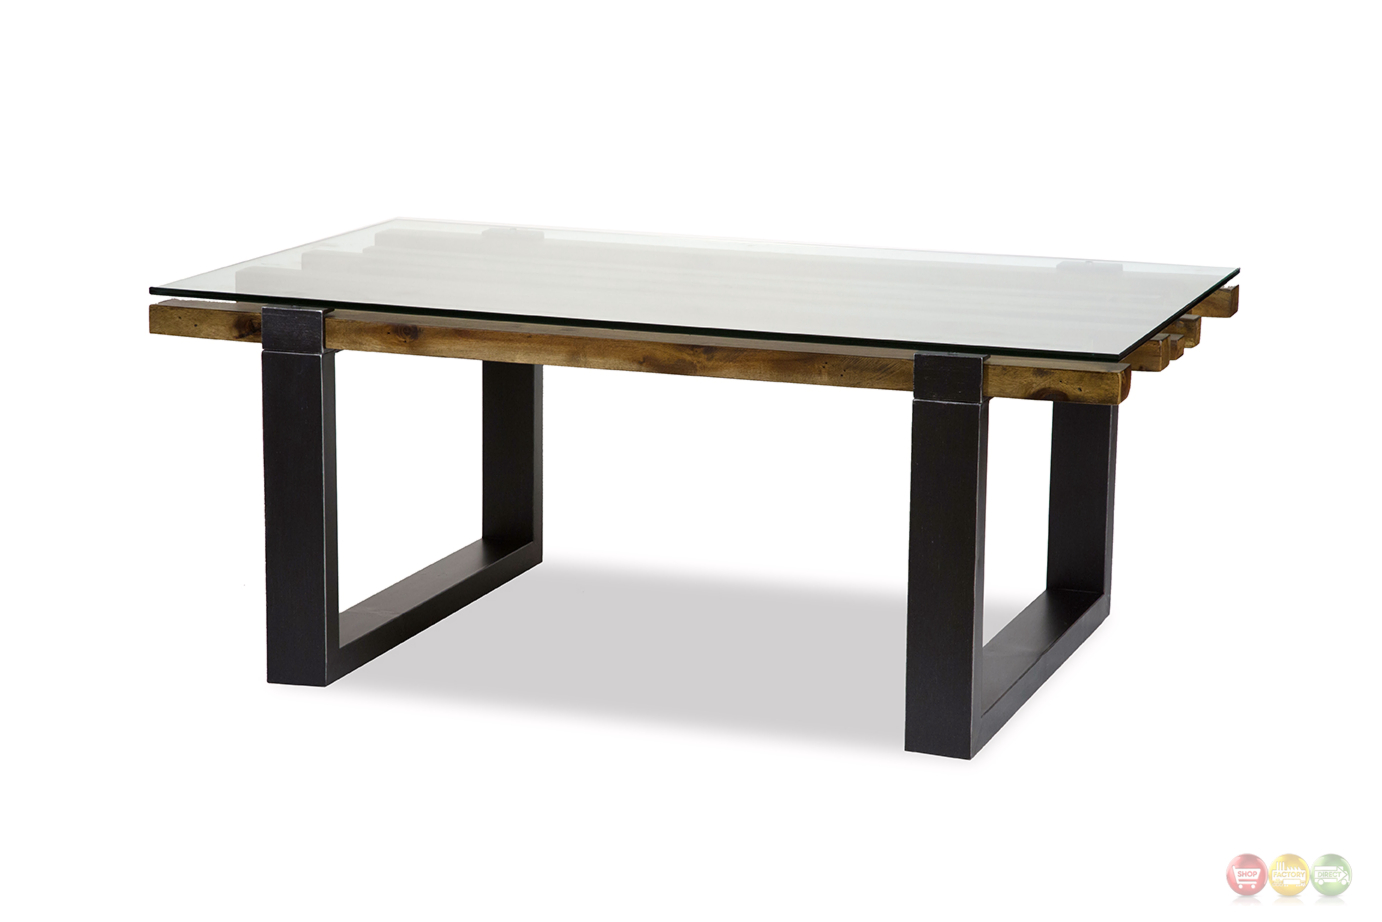 Keystone rustic modern mahogany coffee table w stylish wood glass top Wood coffee table glass top